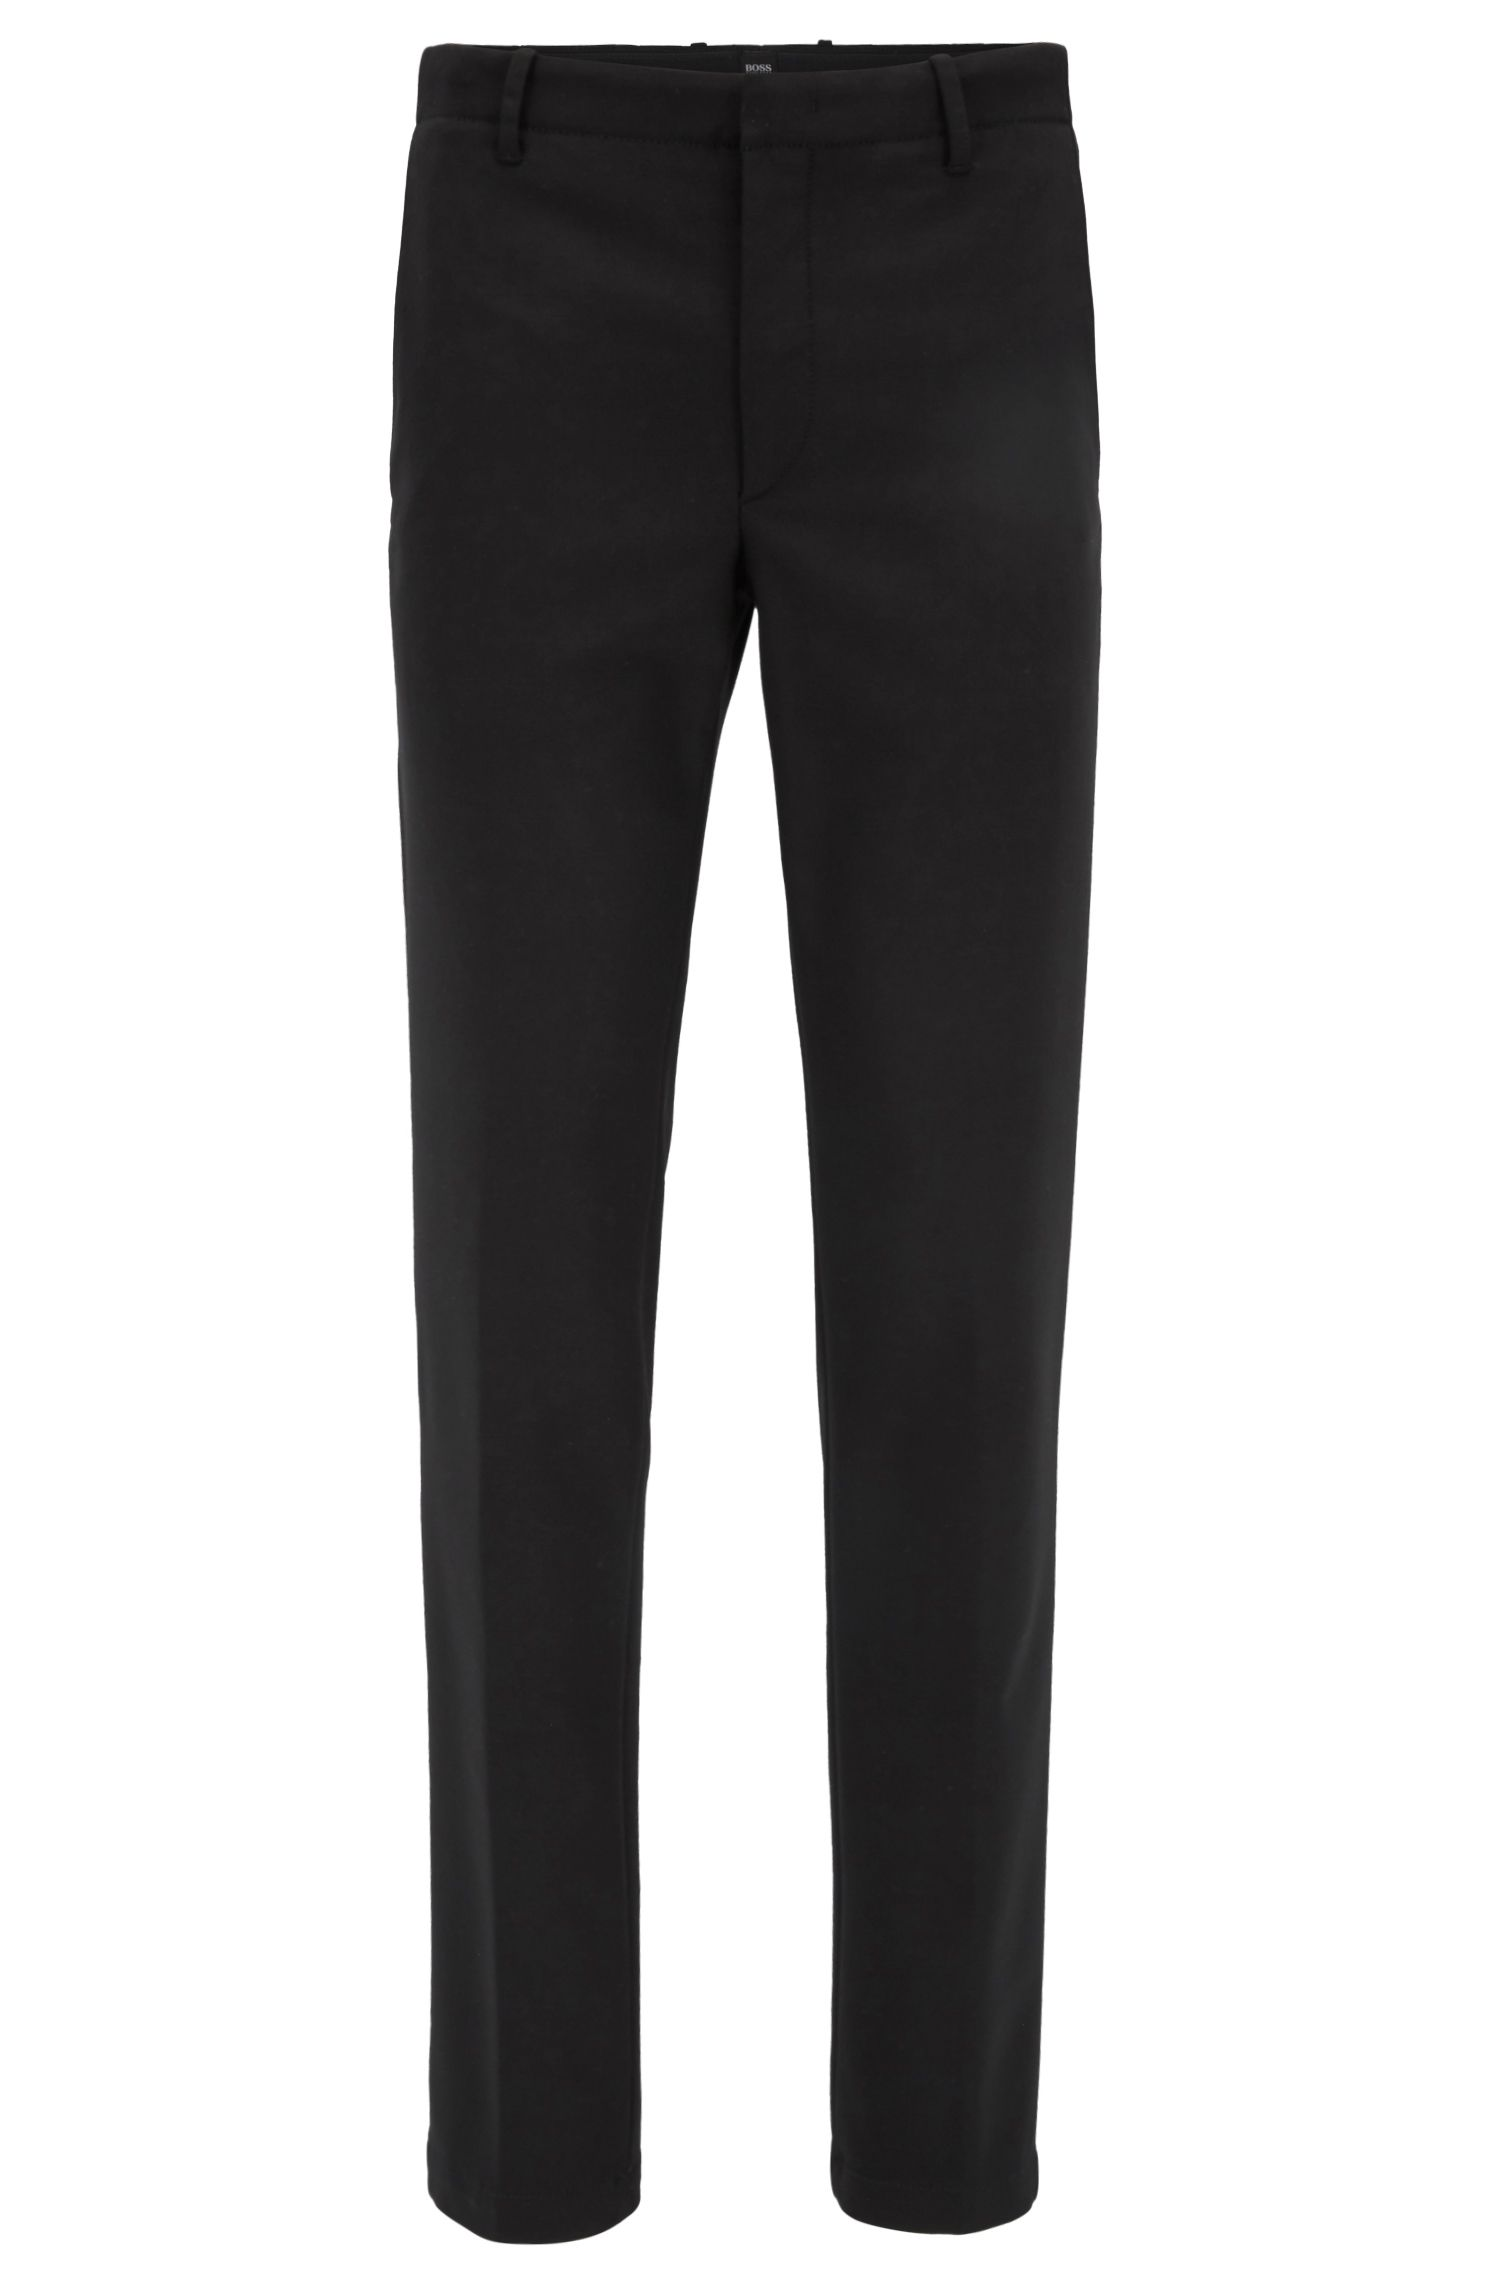 Mercedes-Benz Cotton Blend Pant, Slim Fit | Kaito MB W